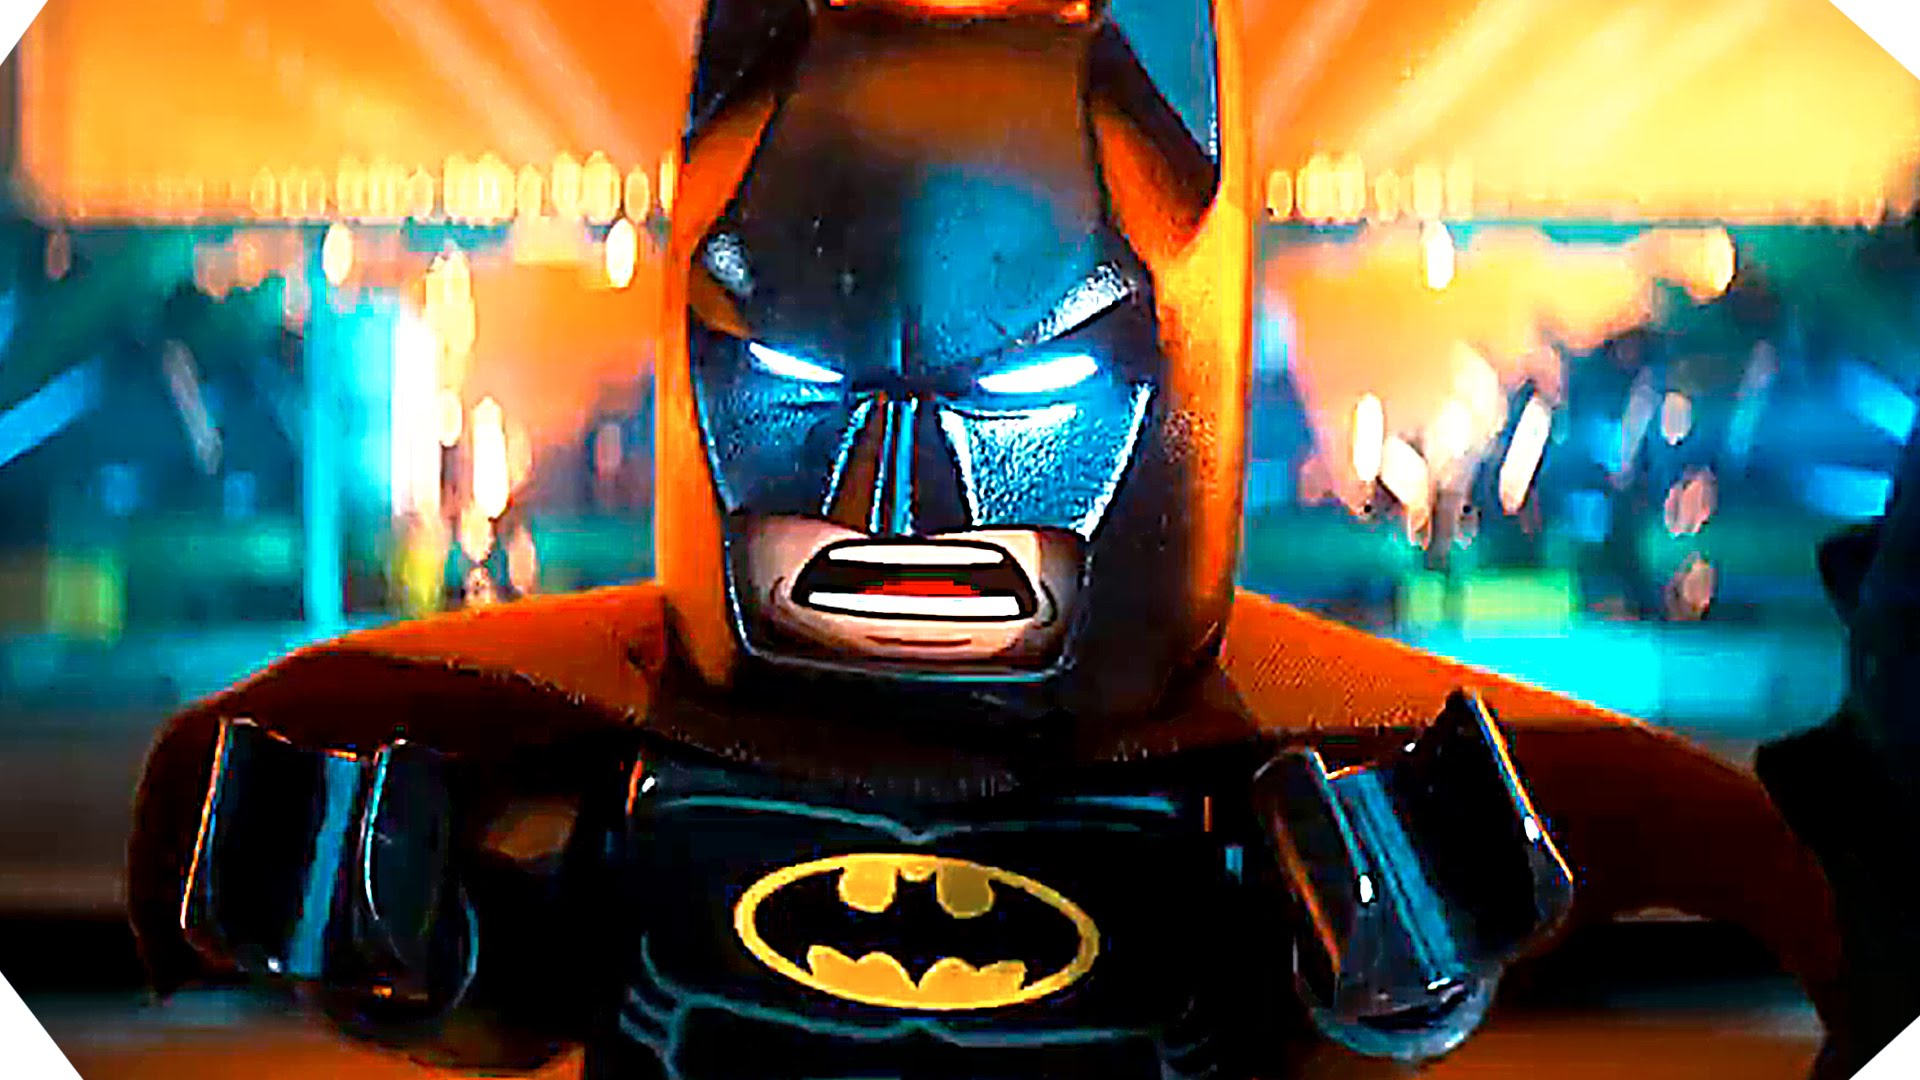 Action, Adorable Life Lessons in New 'The LEGO Batman Movie' Trailer